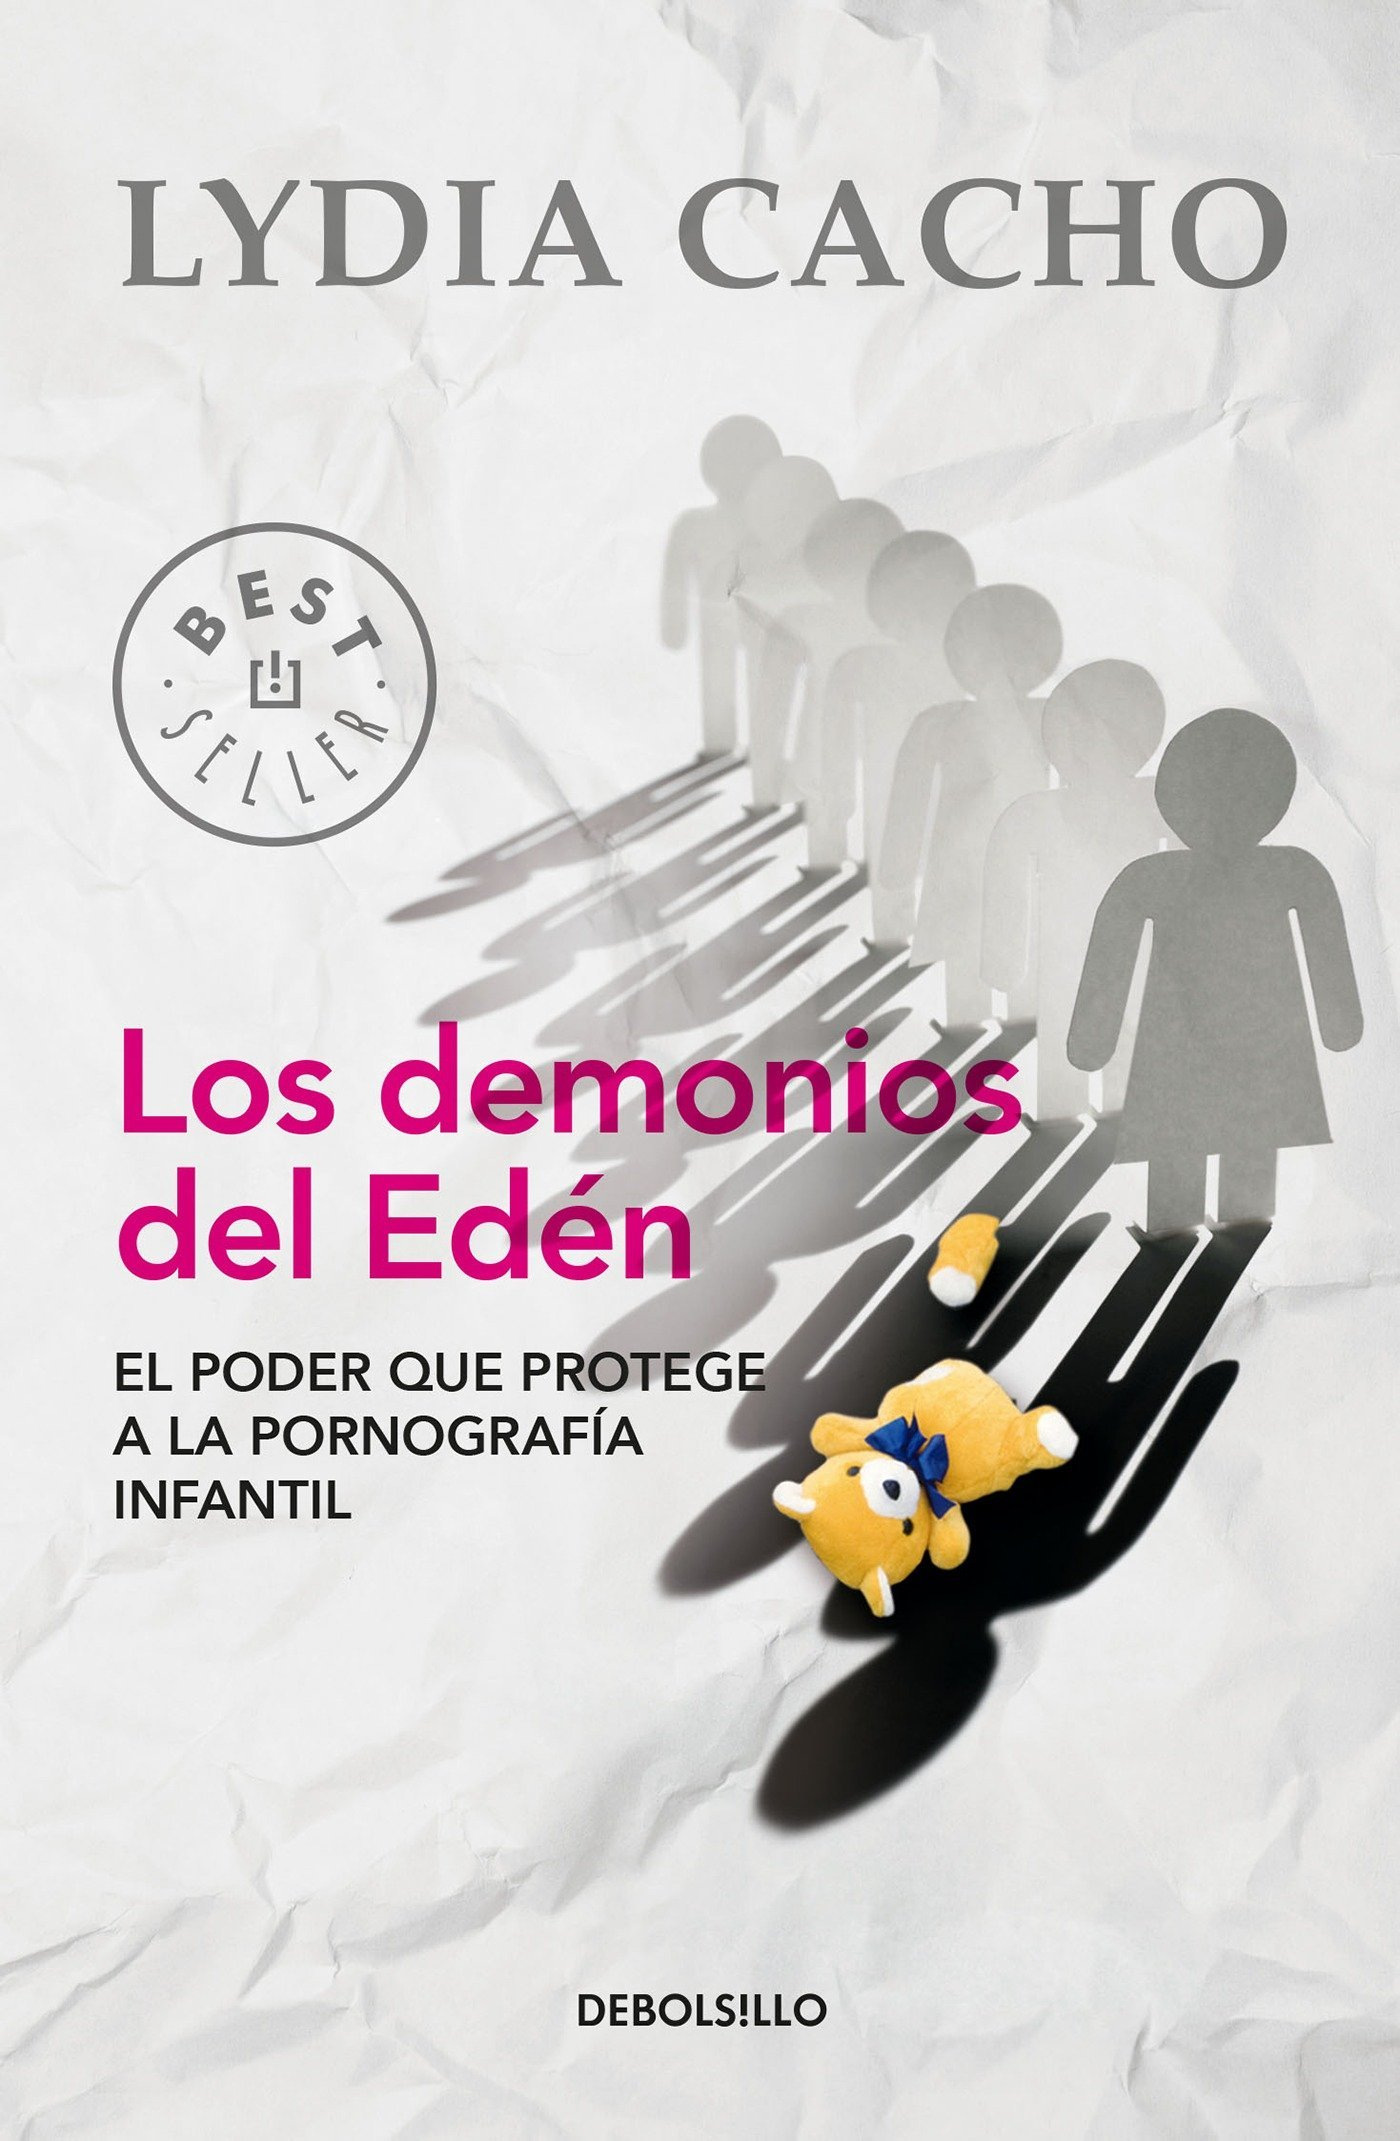 Los demonios del Eden (Spanish Edition): Lydia Cacho: 9786073130899: Amazon.com: Books